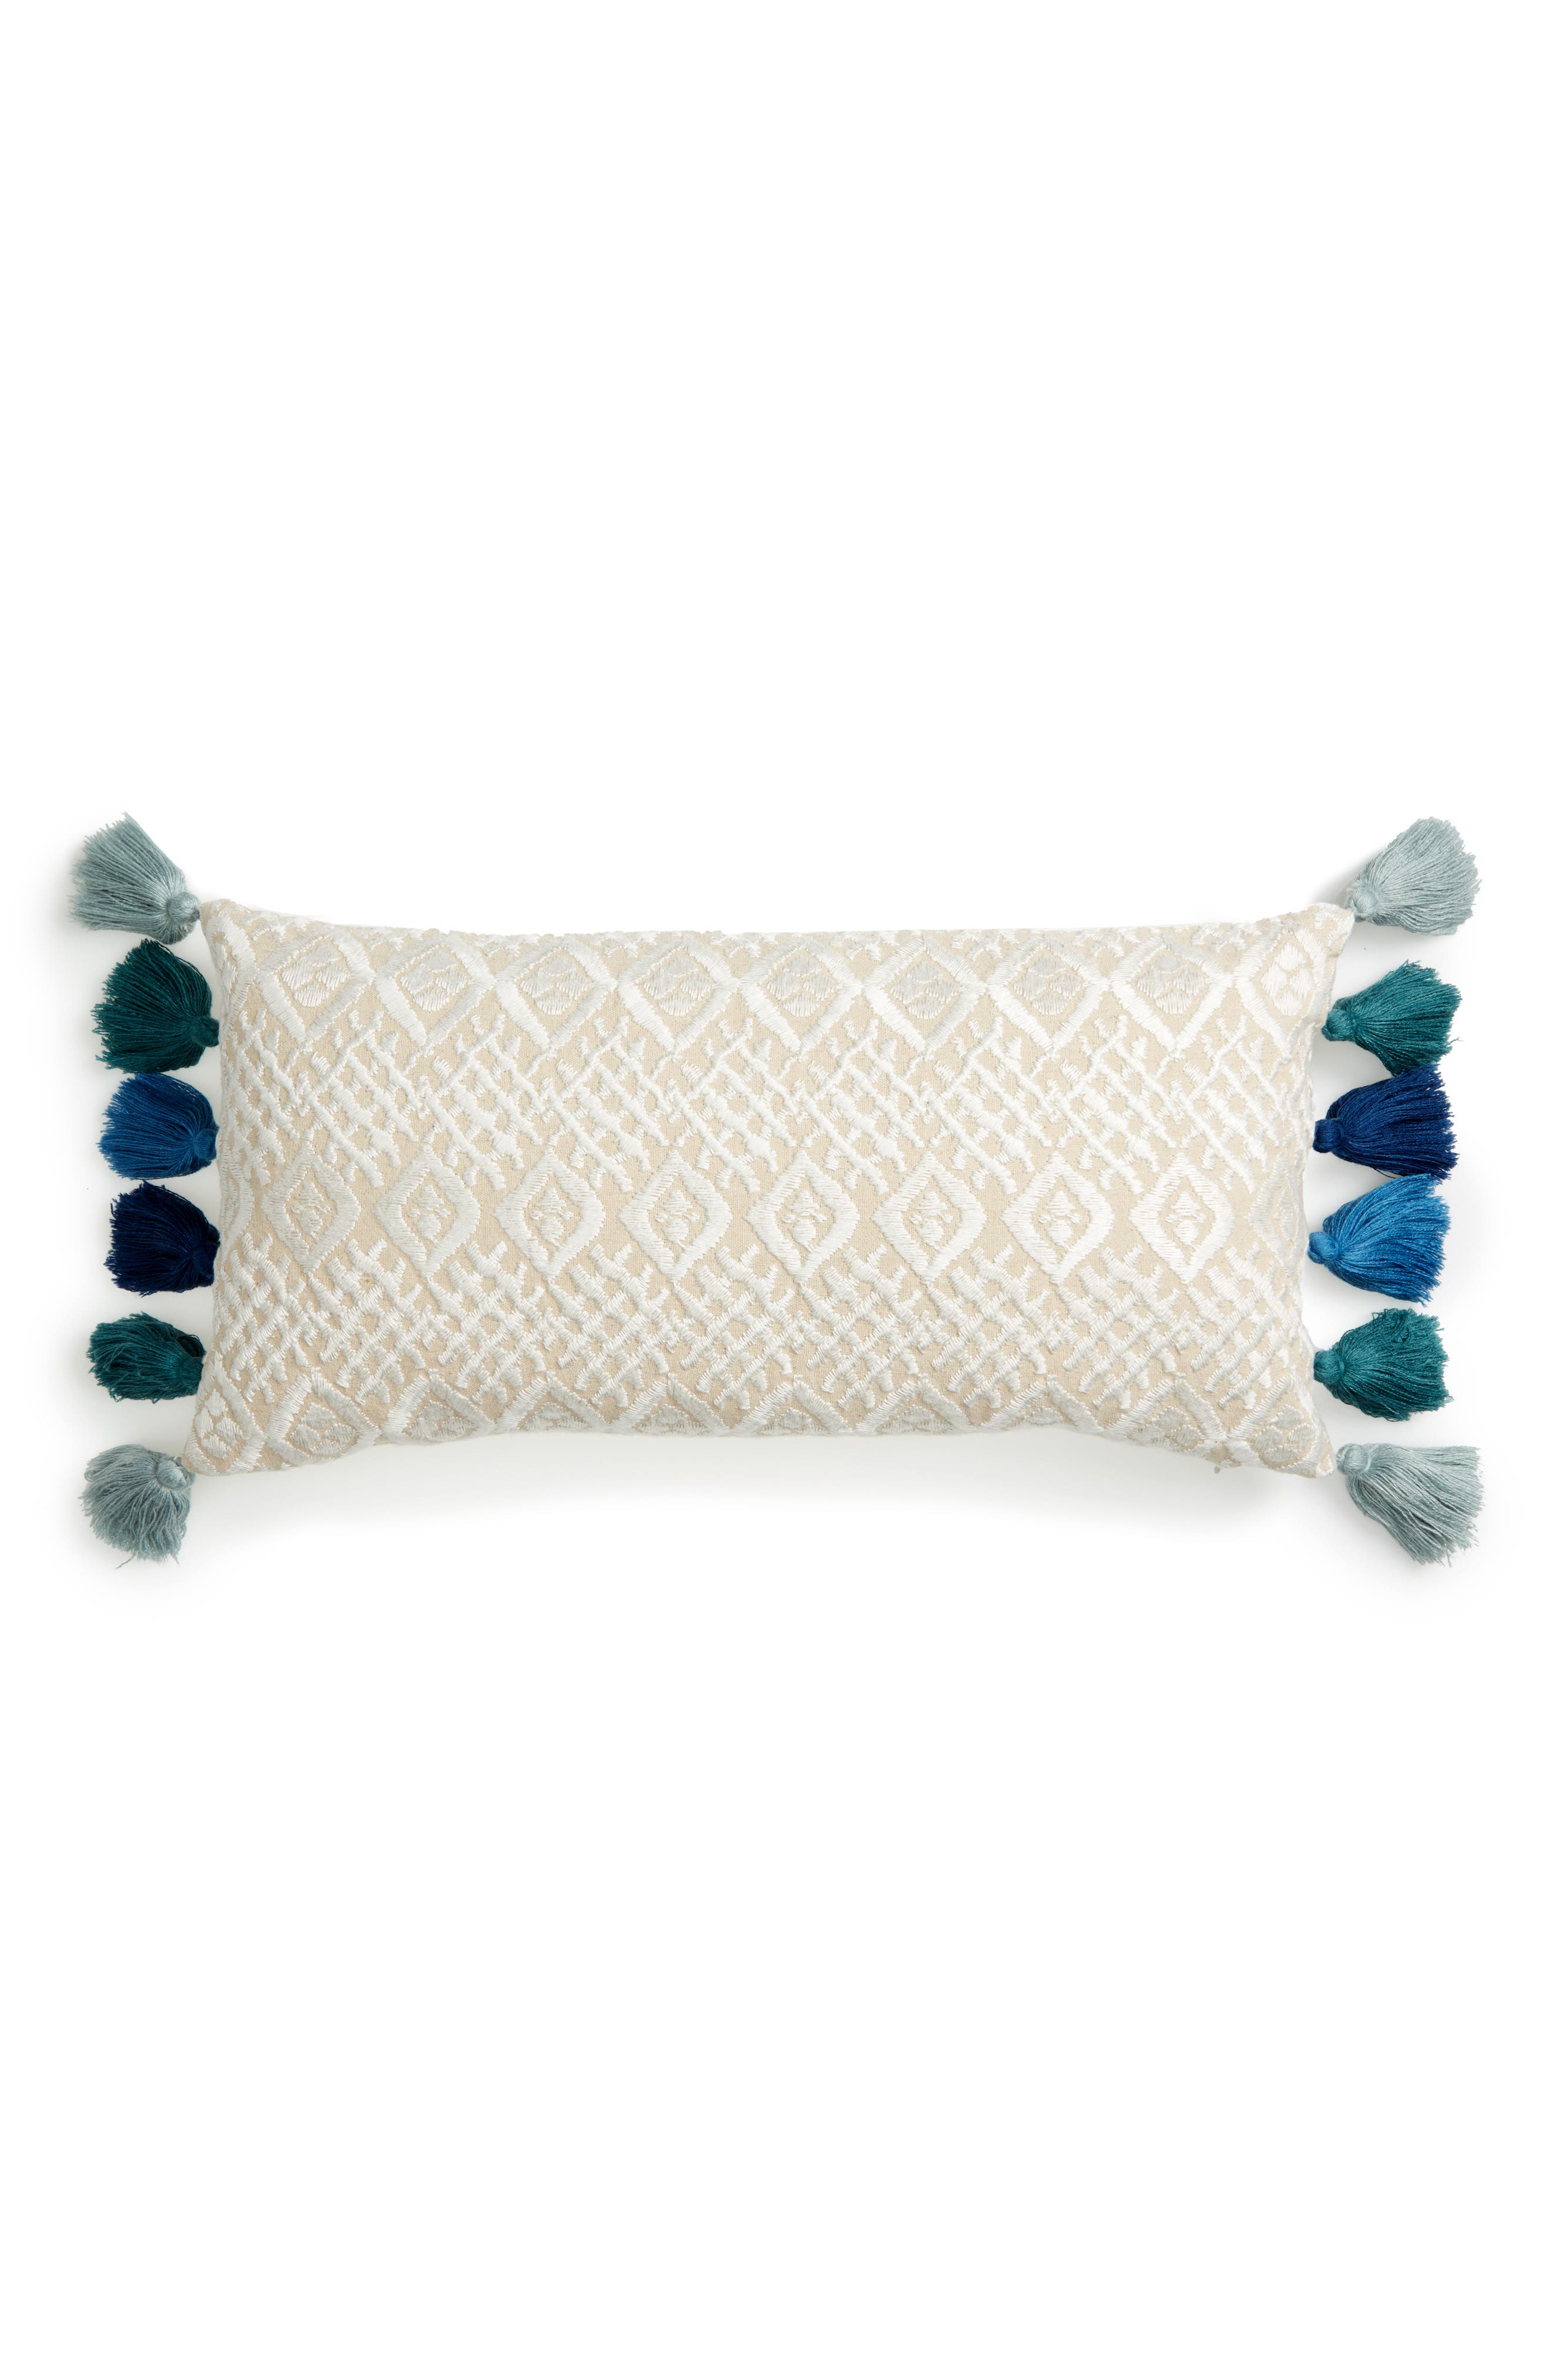 Beckett Embroidered Pillow,                         Main,                         color, 250